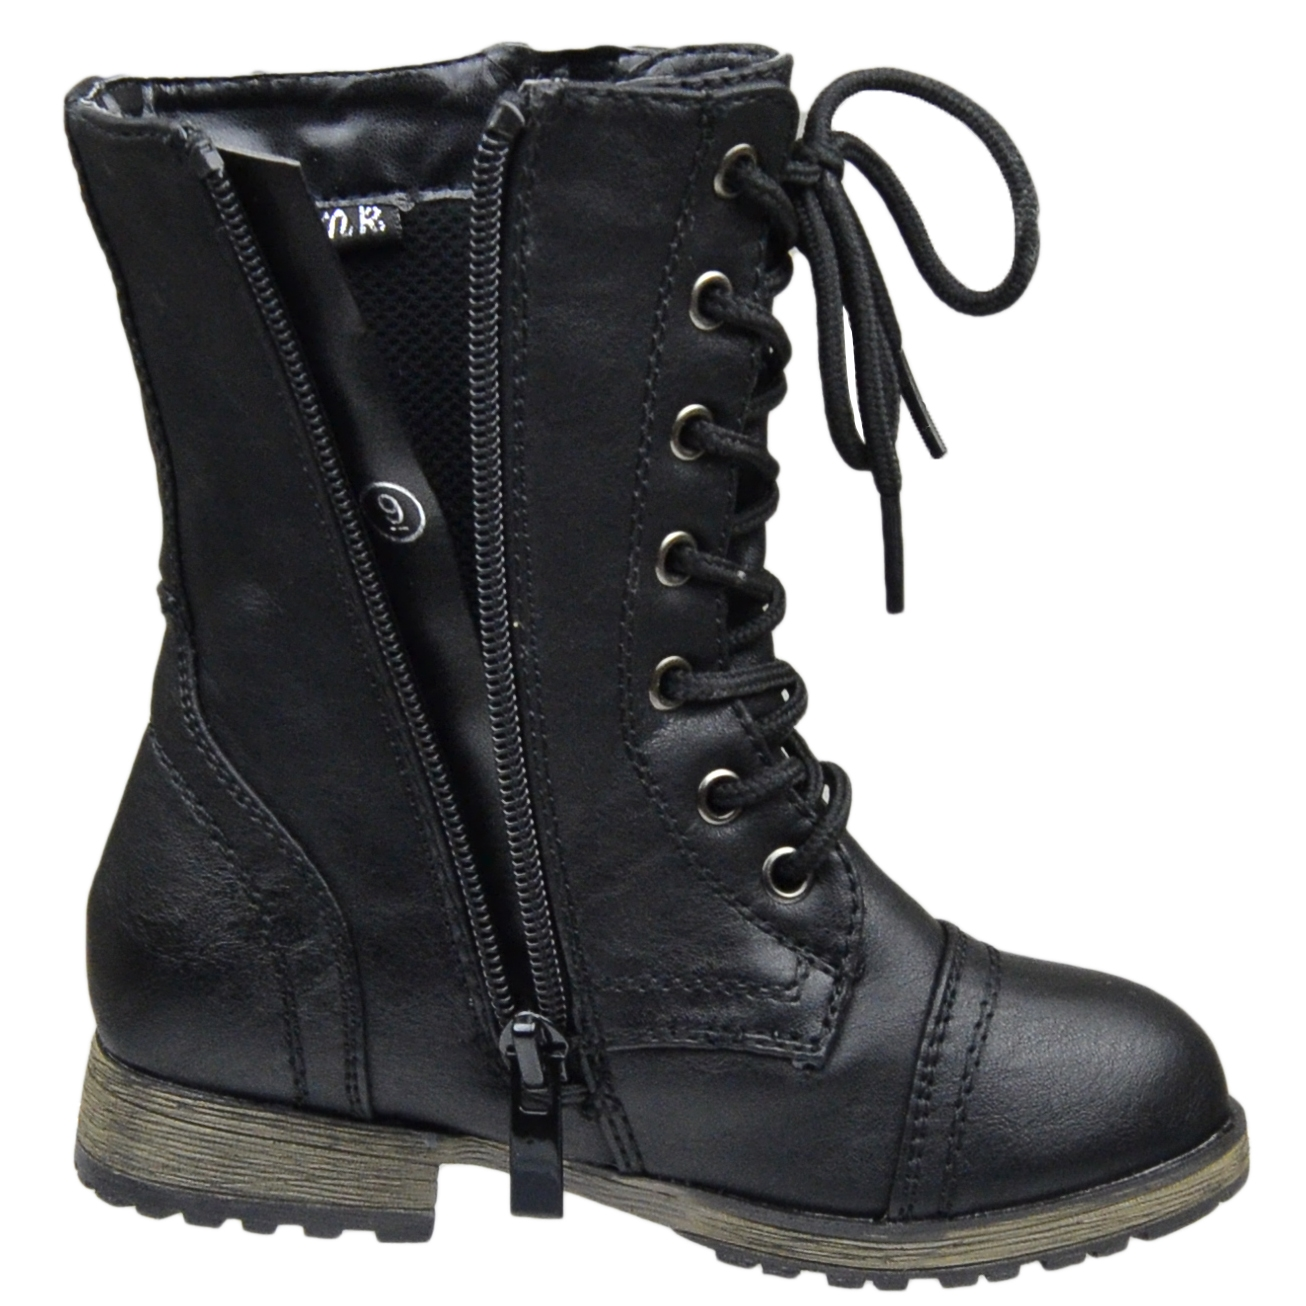 Black Combat Boots For Girls UExa6qw5